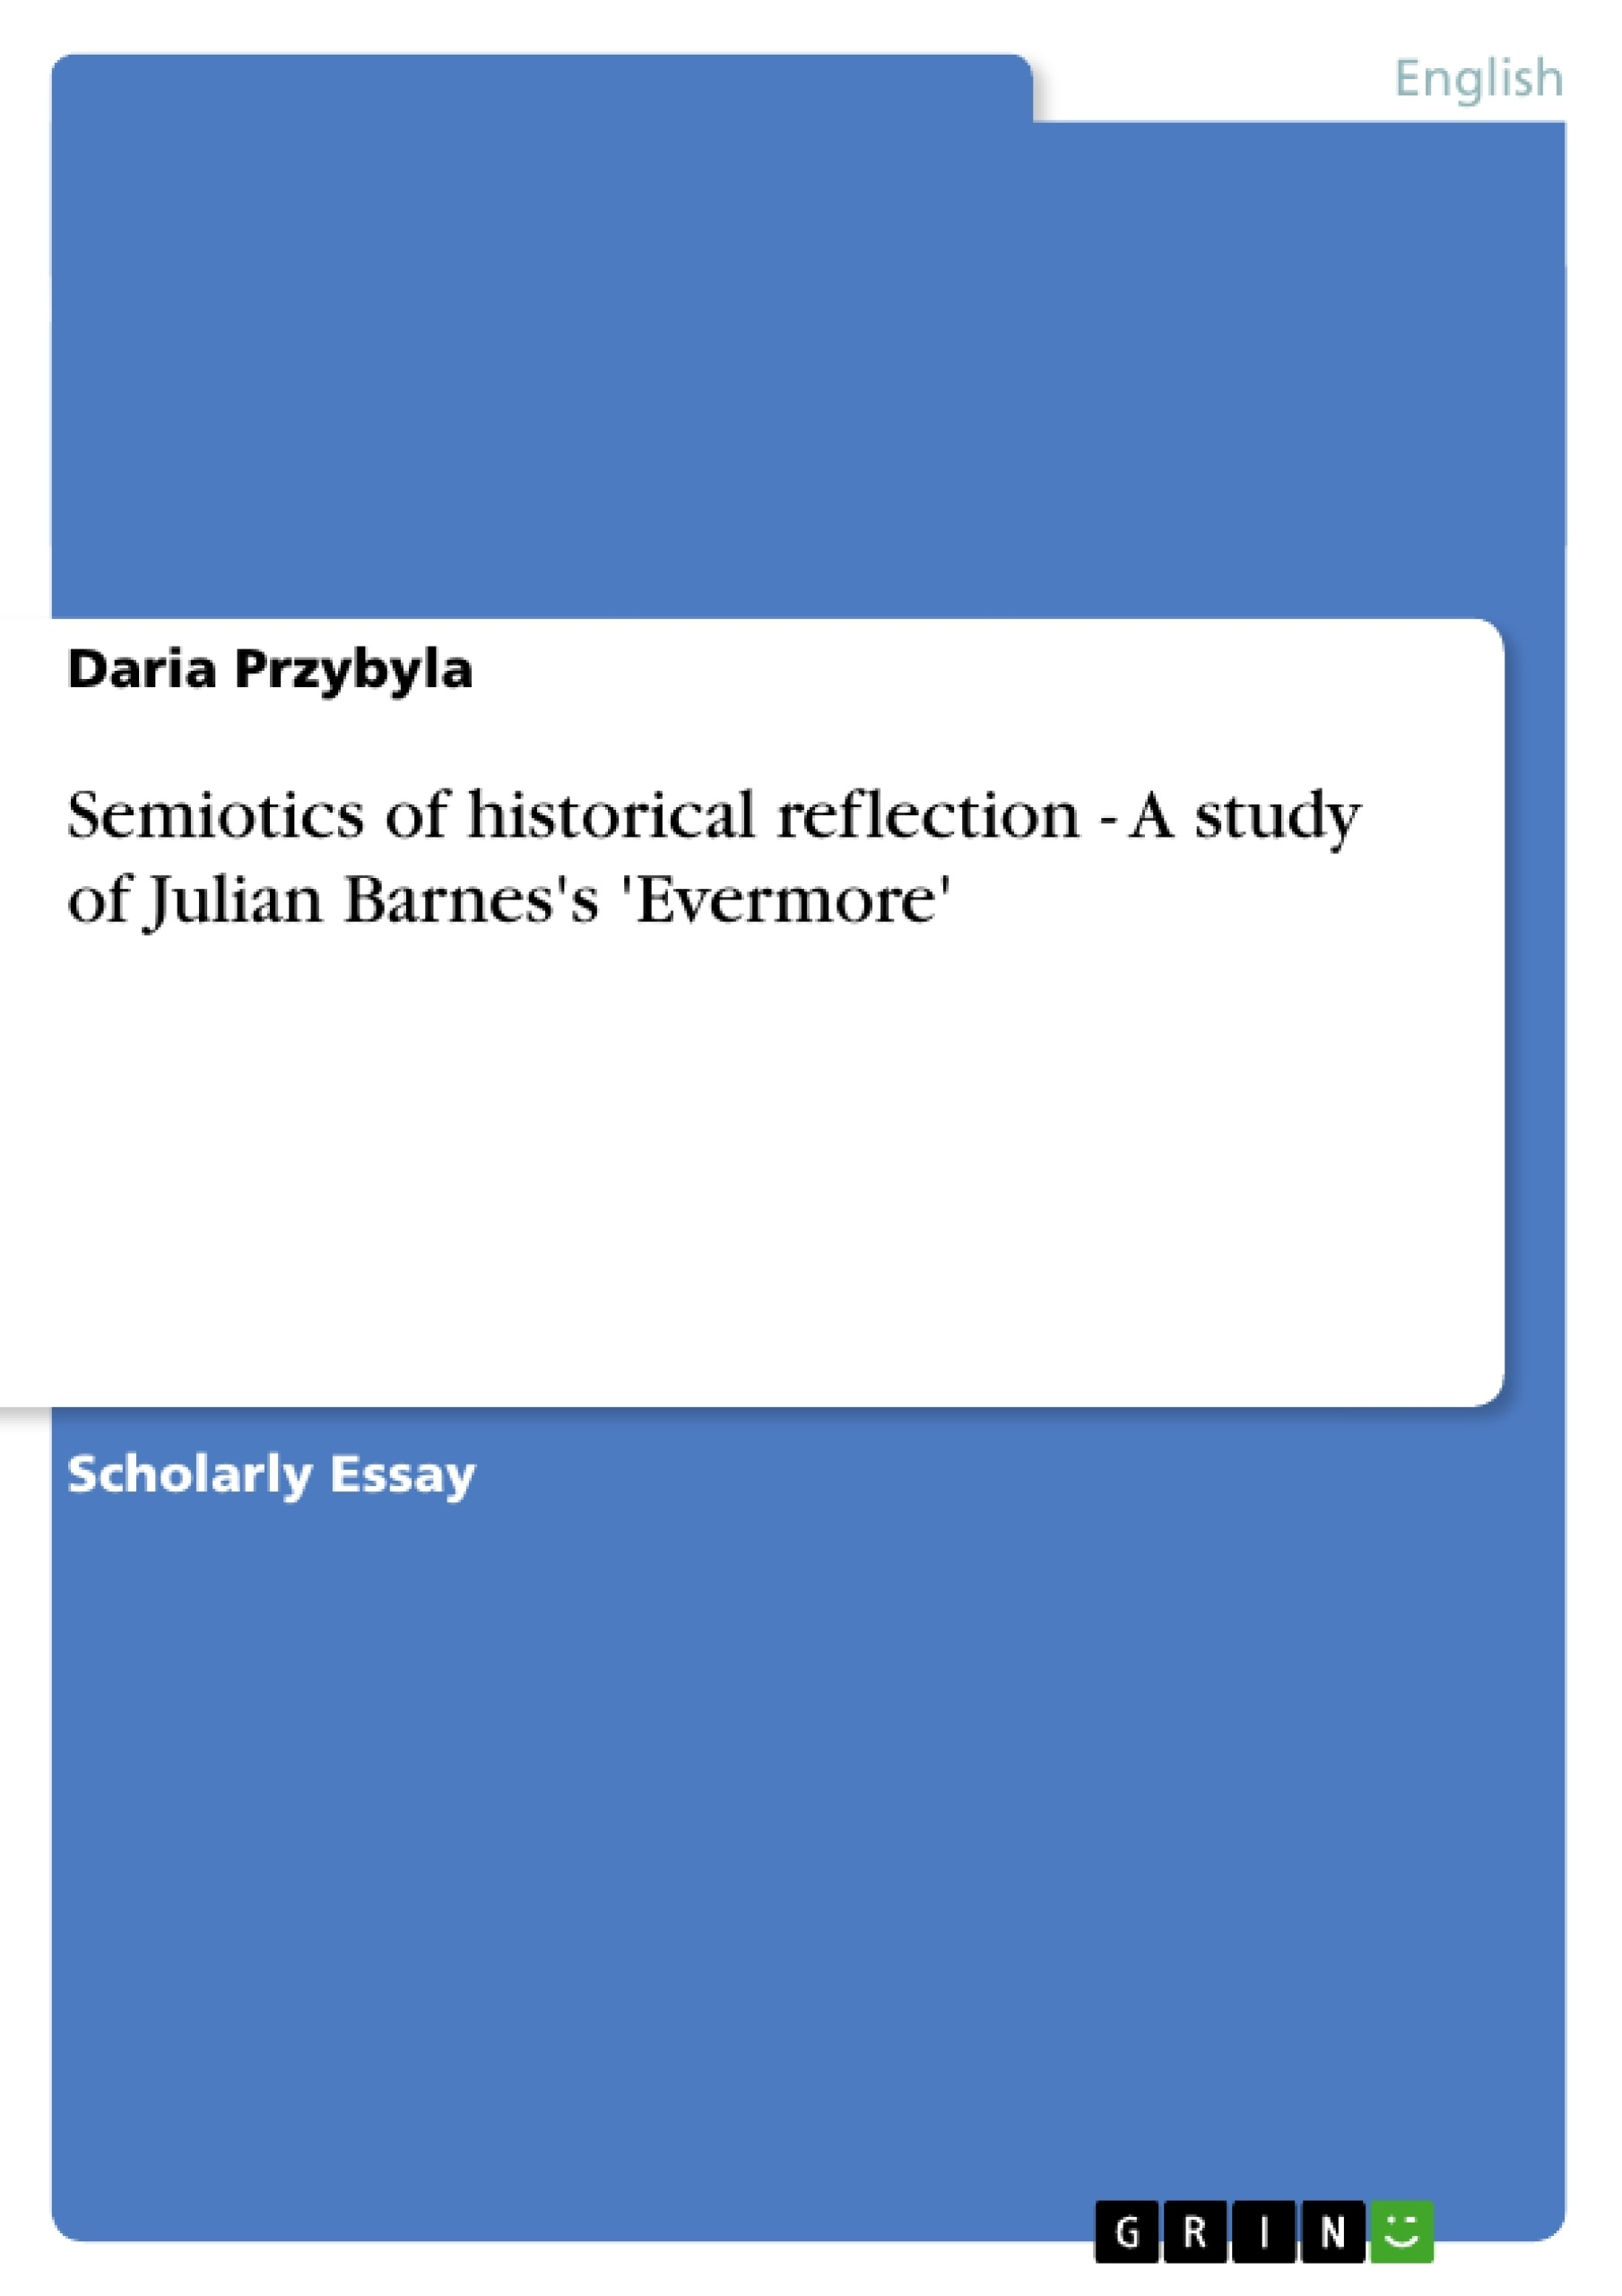 Title: Semiotics of historical reflection - A study of Julian Barnes's 'Evermore'